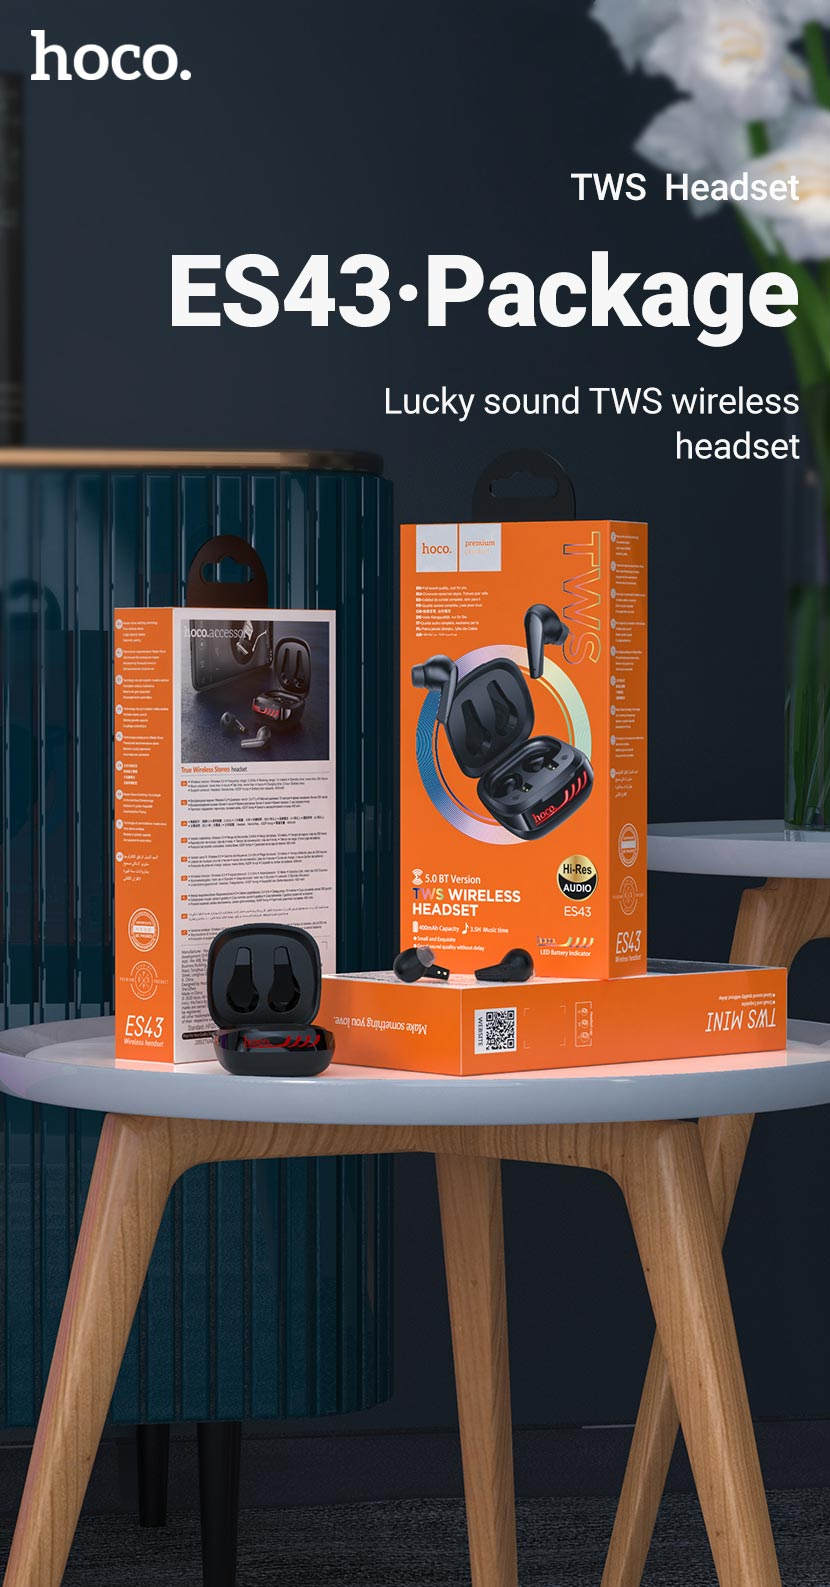 hoco news es43 lucky sound tws wireless headset package en